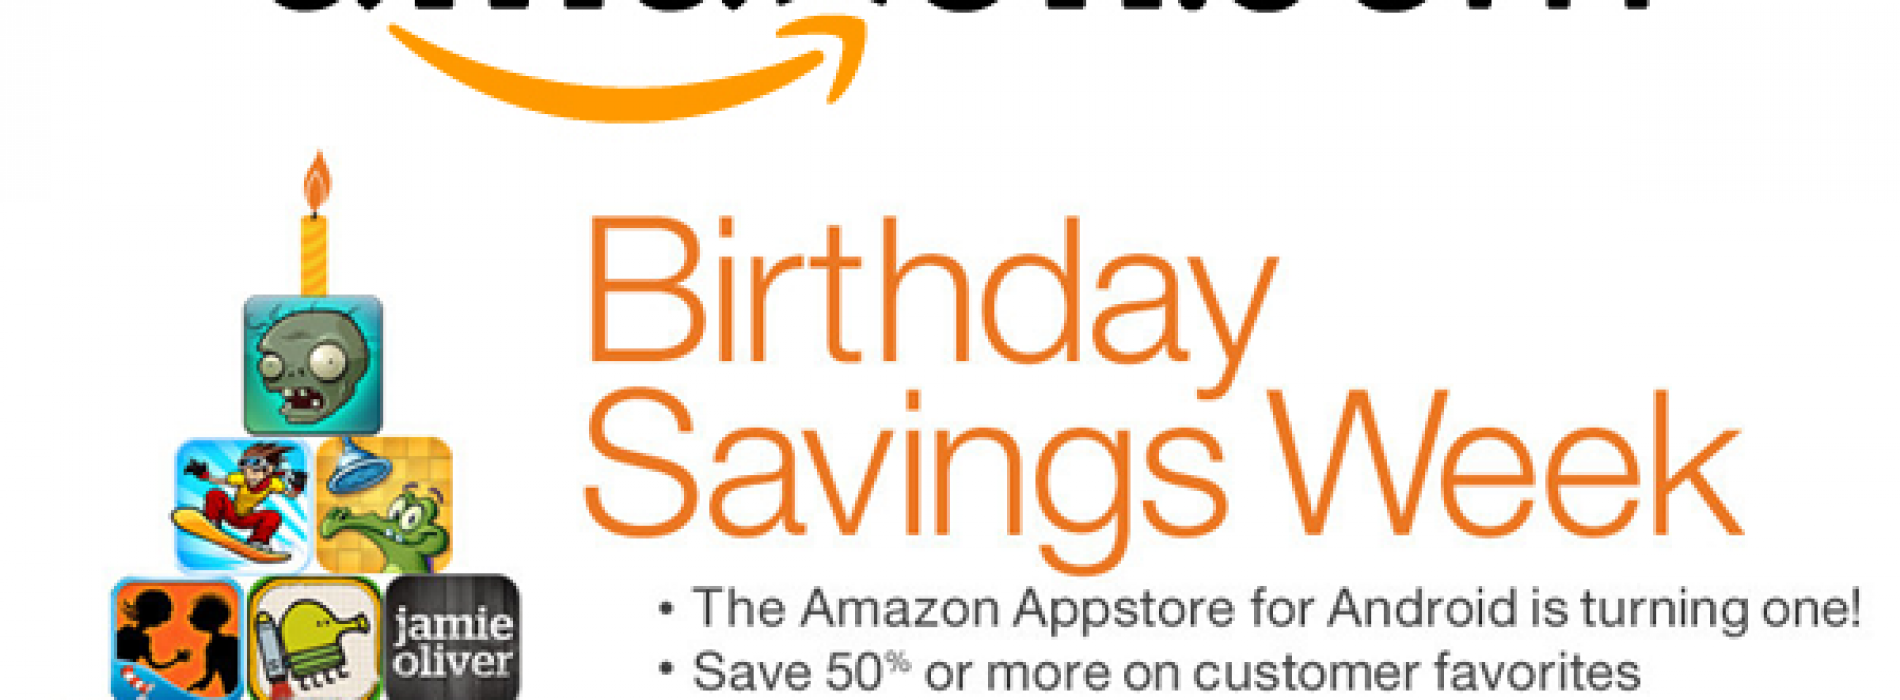 Amazon celebrates Appstore anniversary with discounts and free Kindle Fire tablets